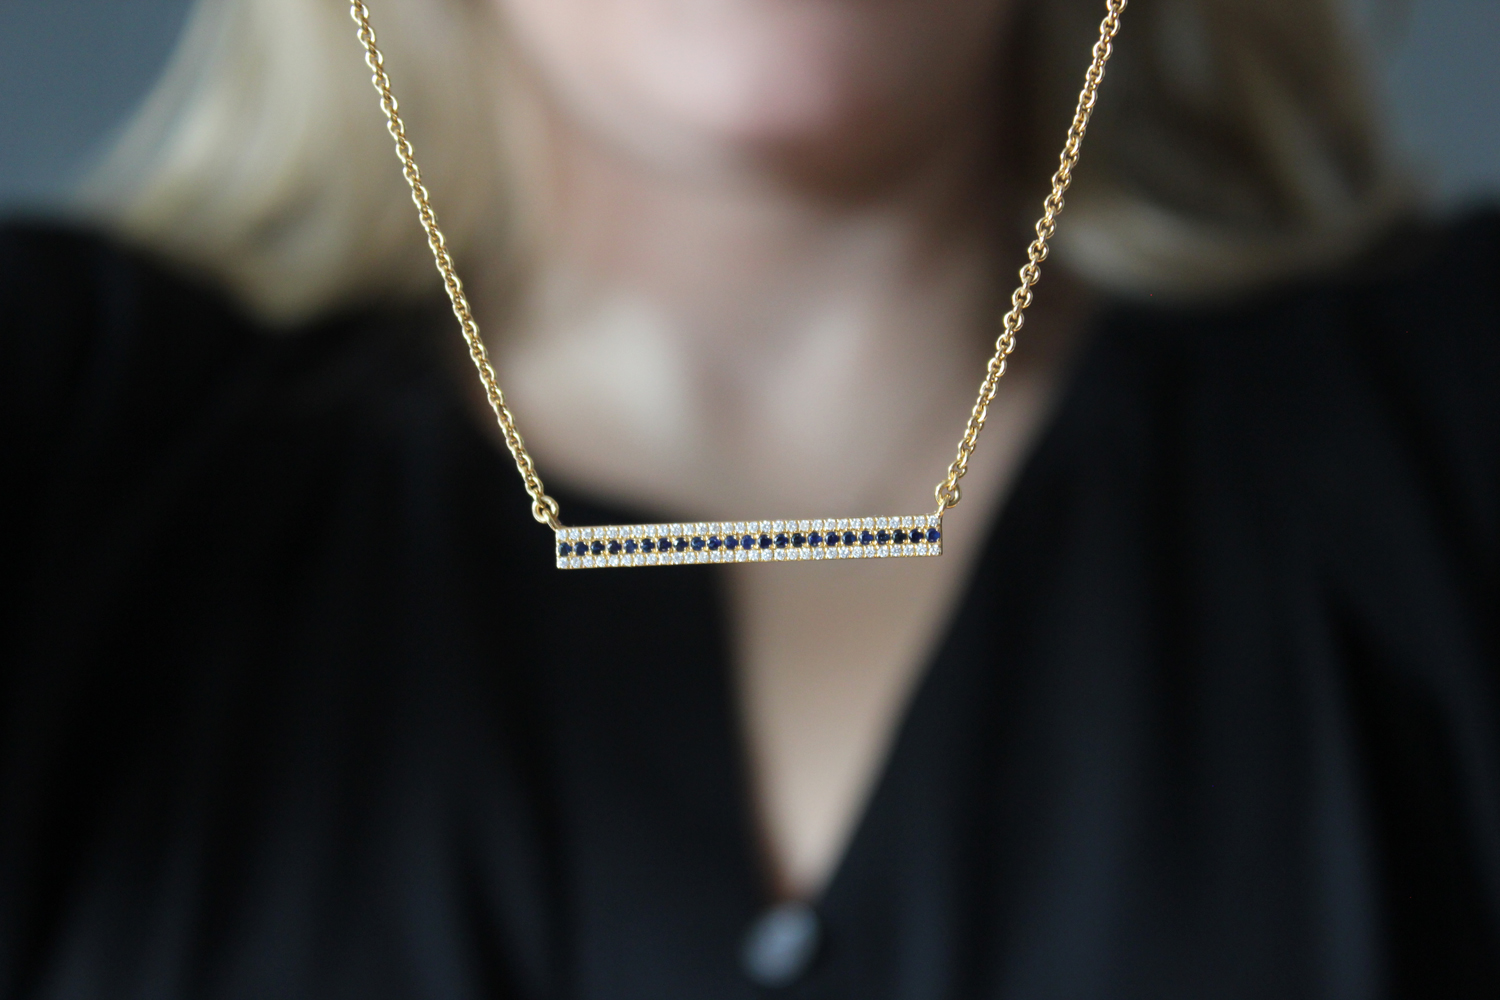 An 18-karat yellow gold diamond and sapphire bar necklace made by Synenberg.